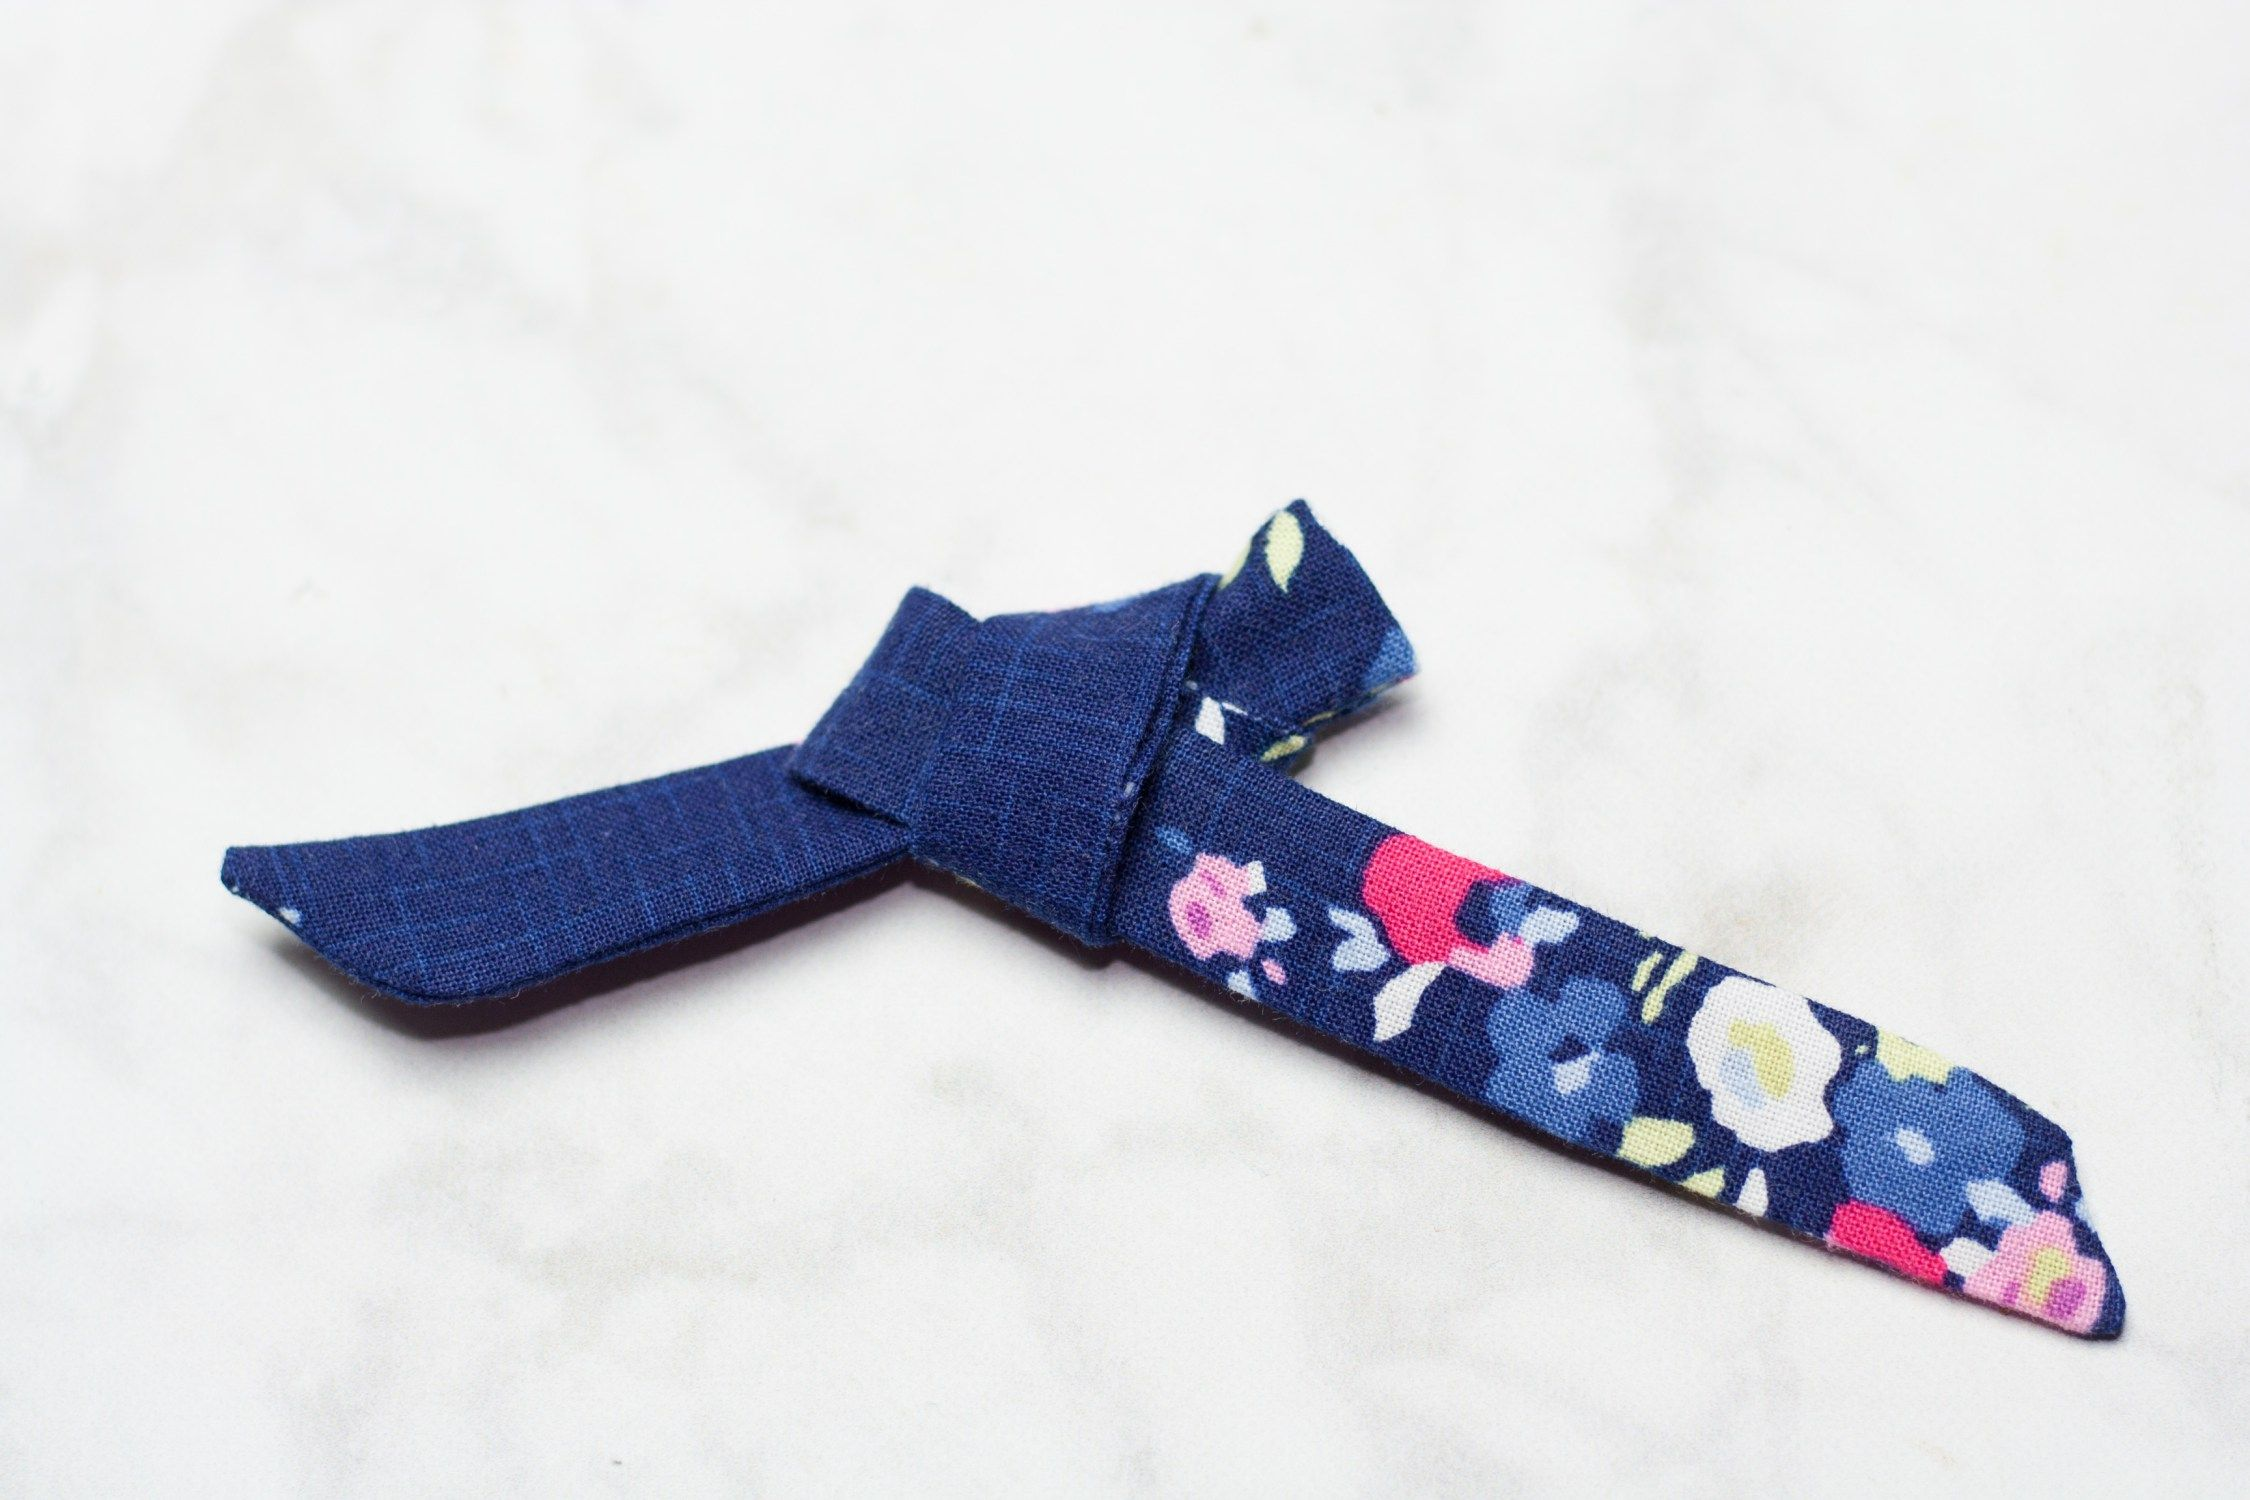 How To Make a Simple Bow Sewing Tutorial   DIY